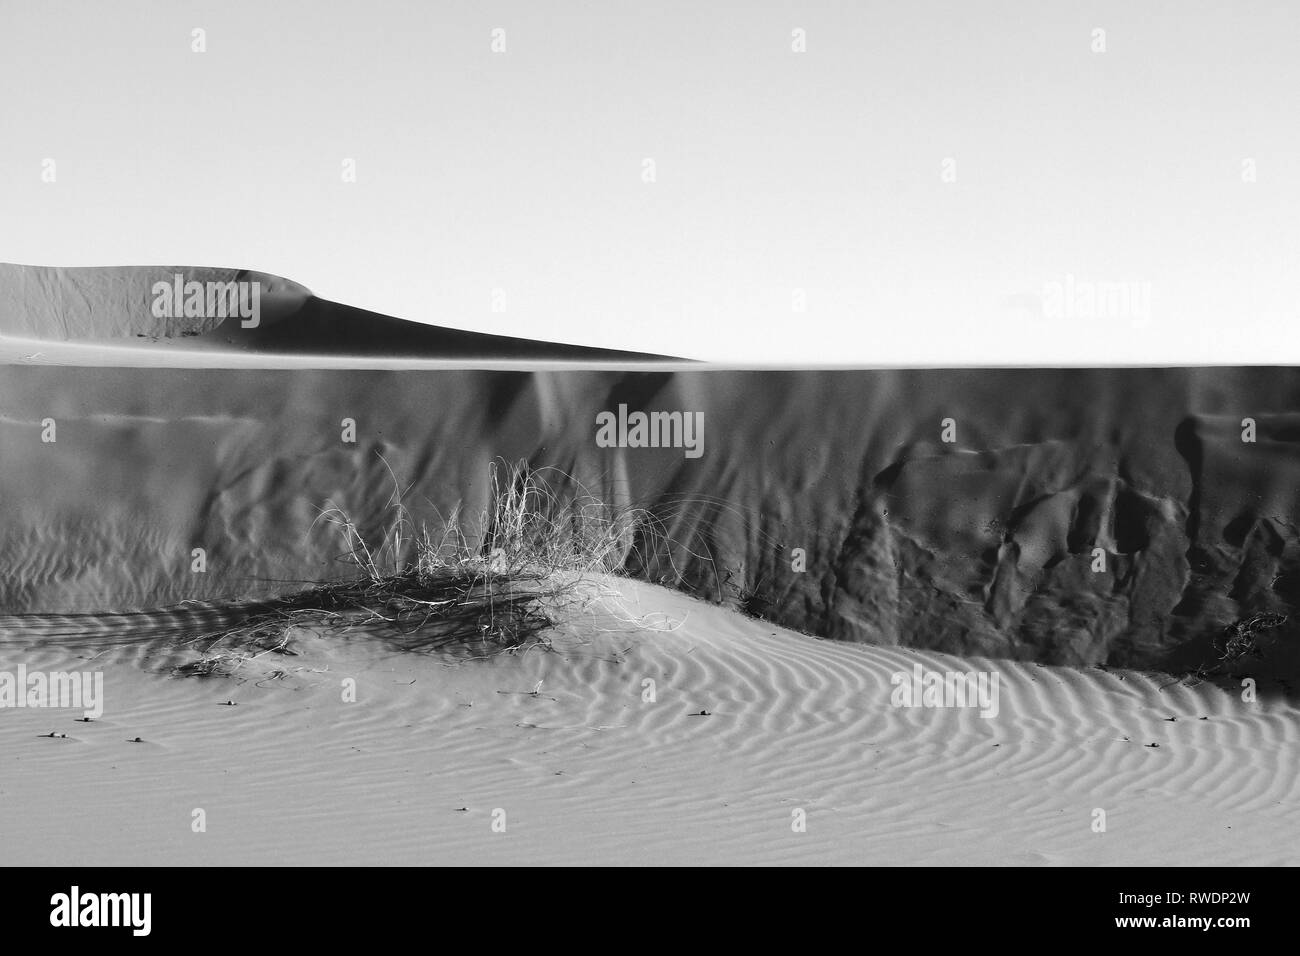 Visible interesting textures and patterns on sand surface dunes shape shadows and lights on sand wall black and white